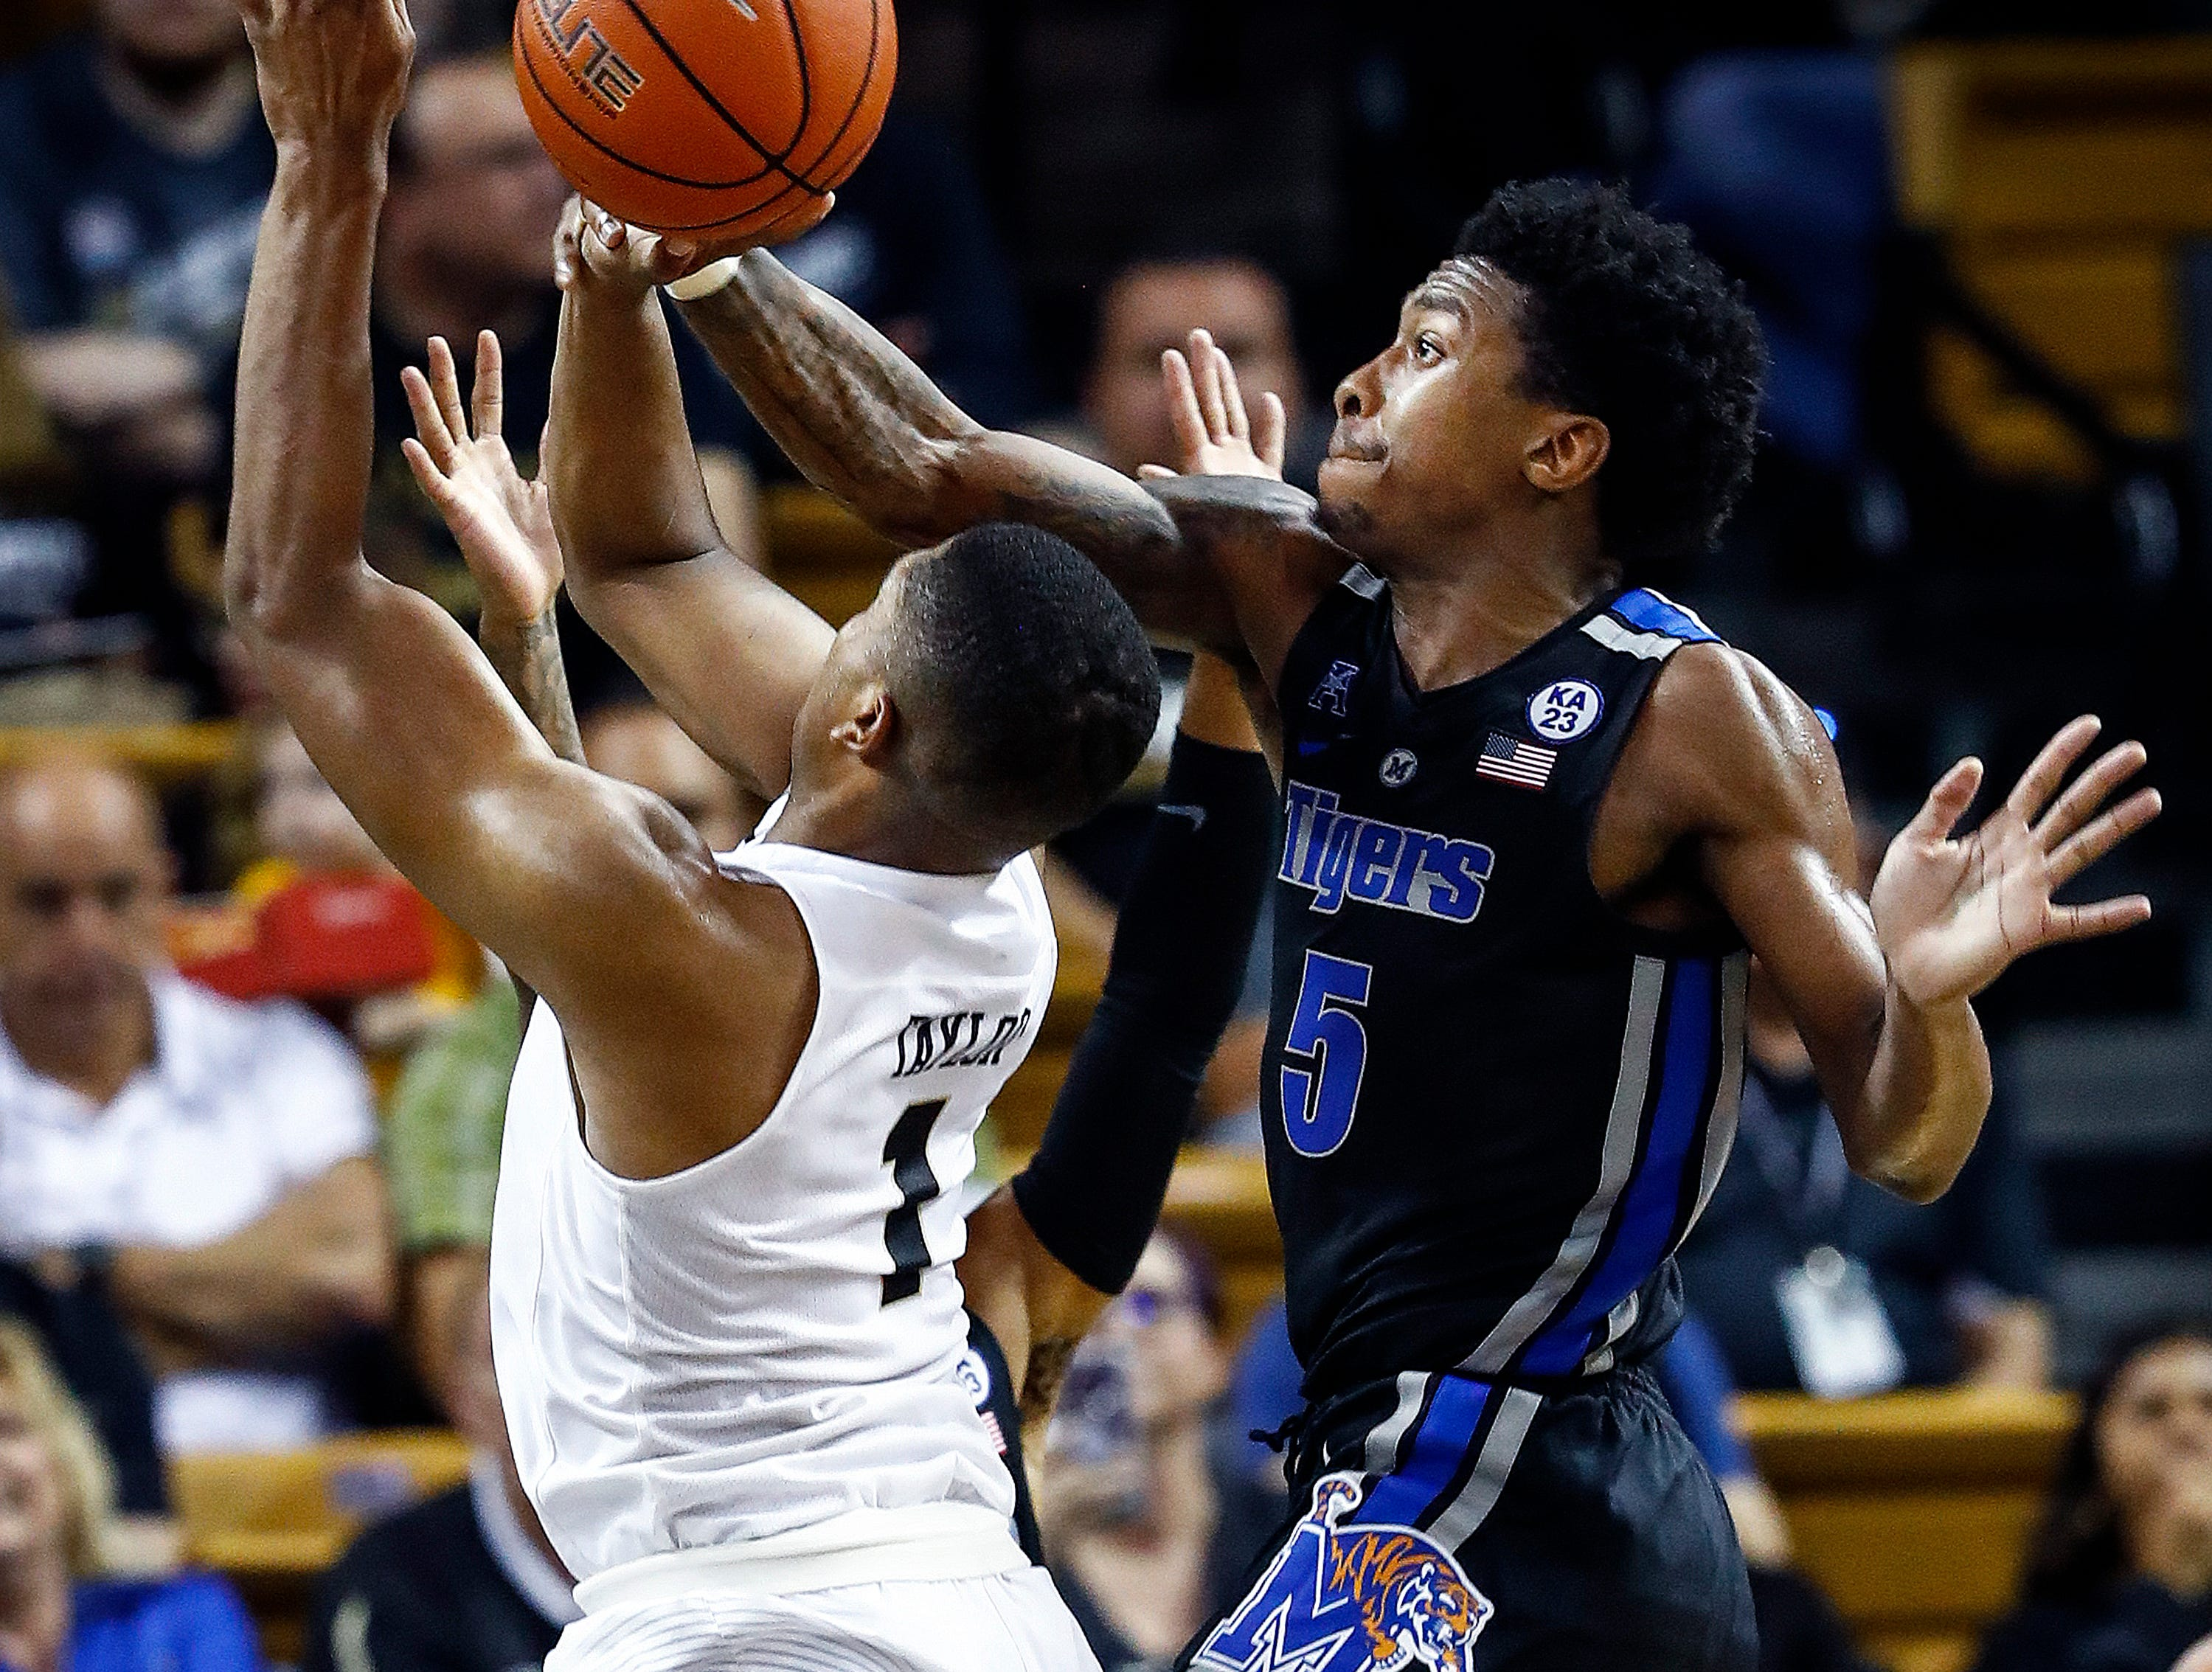 Memphis defender Kareem Brewton Jr. (right) is called for a foul while blocking the shot of UCF guard BJ Taylor (left) during action in Orlando Saturday, February 16, 2019.